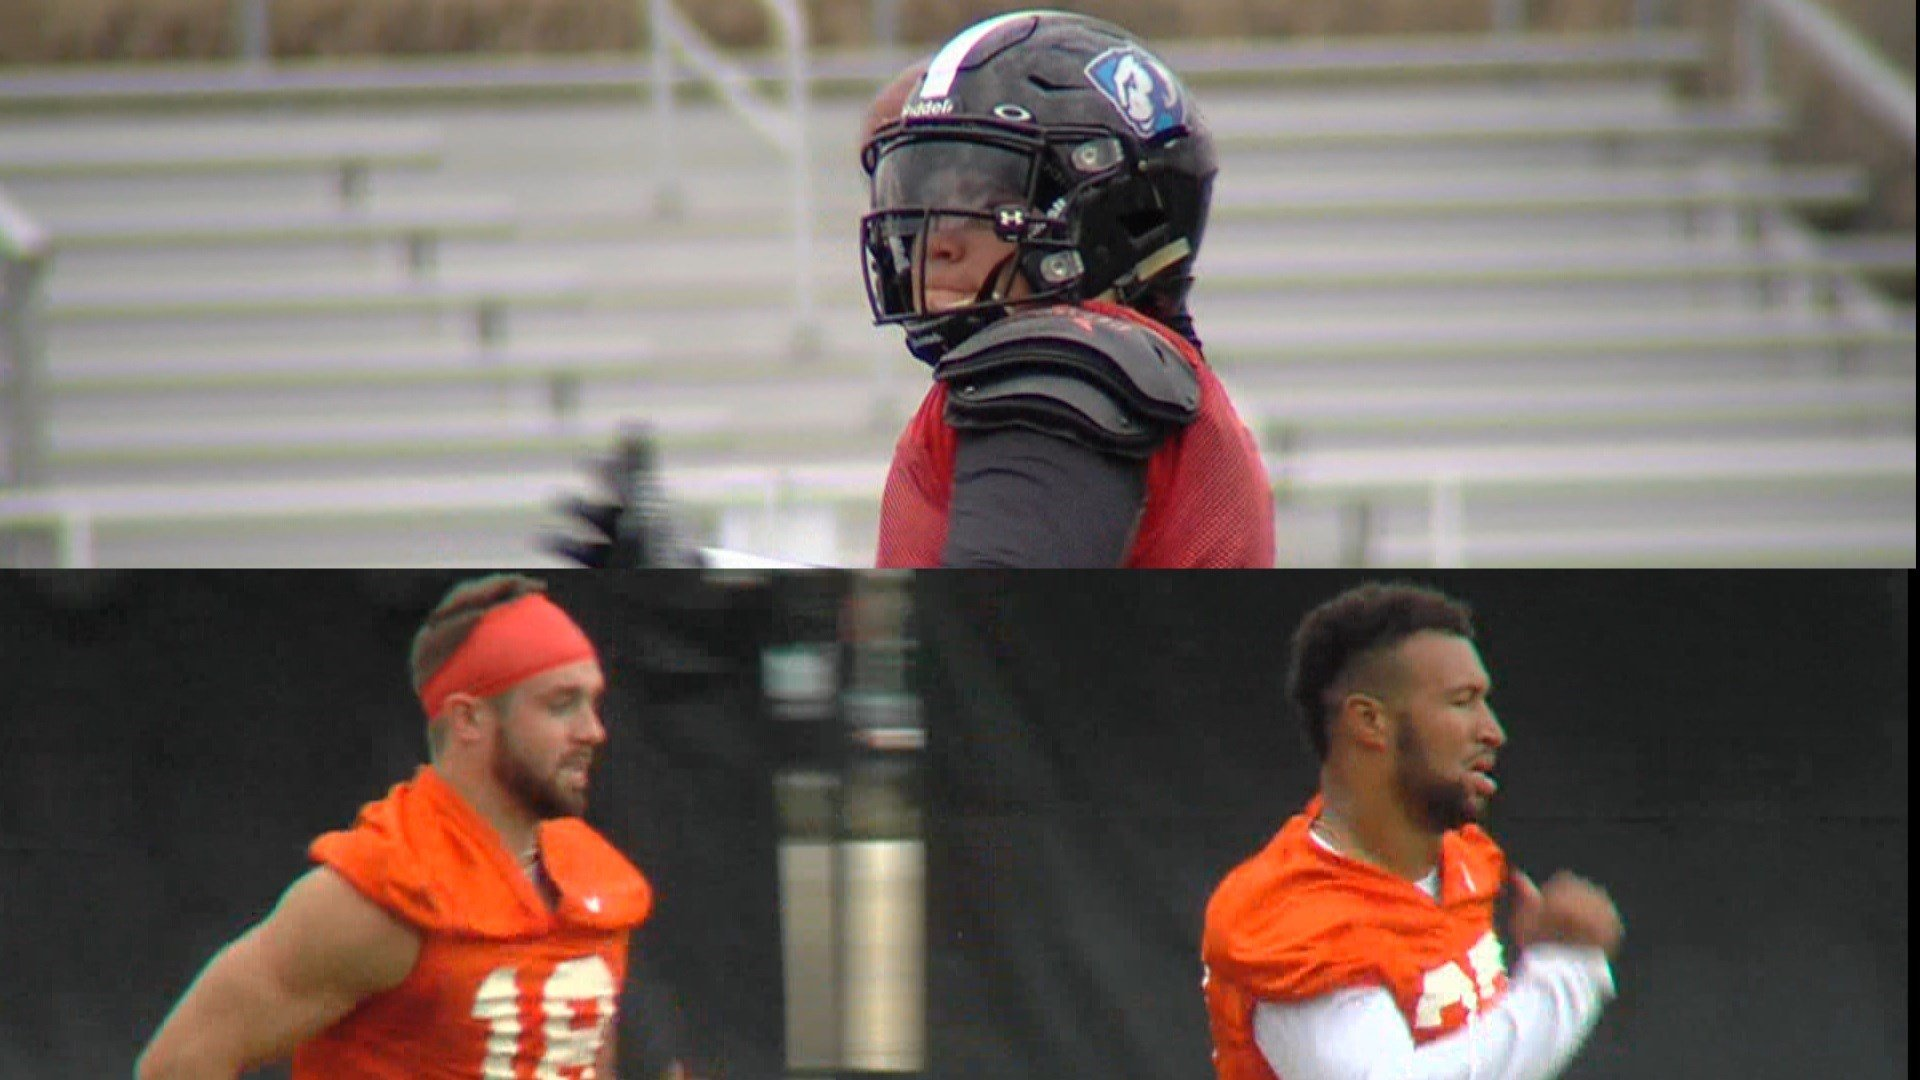 Eastern Illinois' Scotty Gilkey (above) and Illinois' Mike Dudek (bottom left) and Dre Brown (bottom right) have handled an onslaught of injuries and other setbacks. It's how they've responded that makes them Hero of the Week.